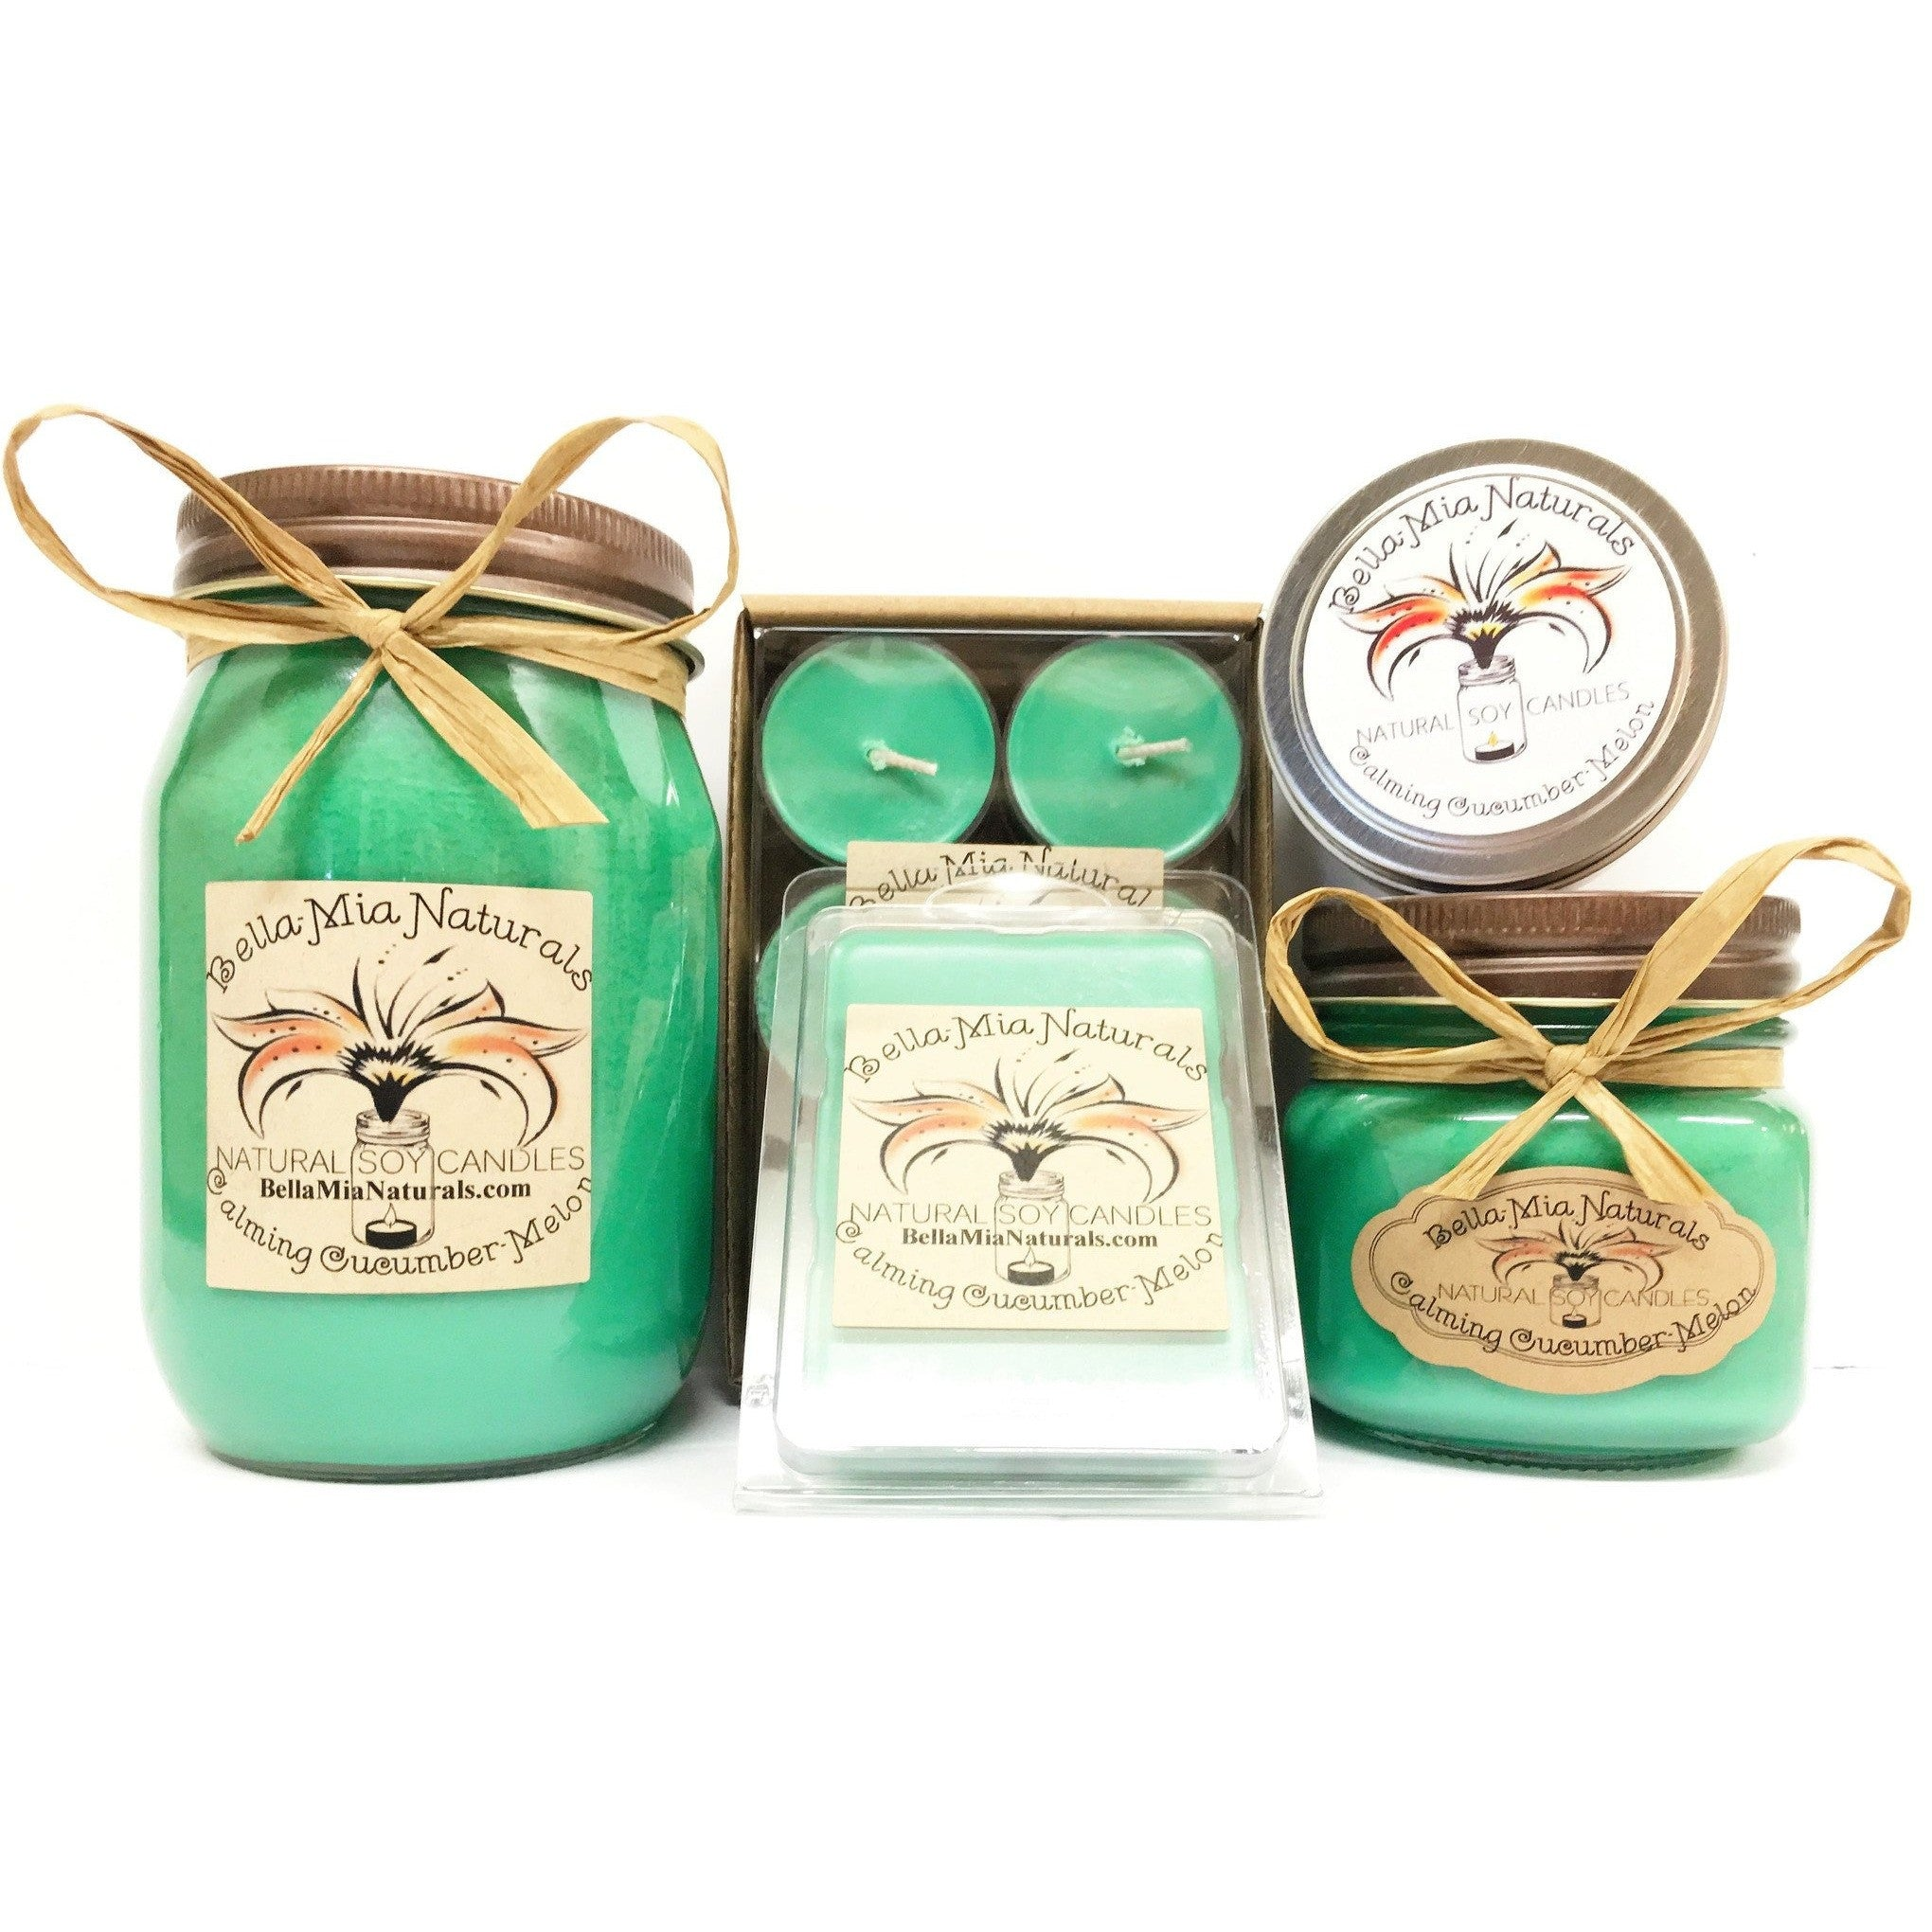 Calming Cucumber-Melon Everyday Natural Soy Candles -  - Bella-Mia Naturals All Natural Soy Candles & Lip Balms - 1